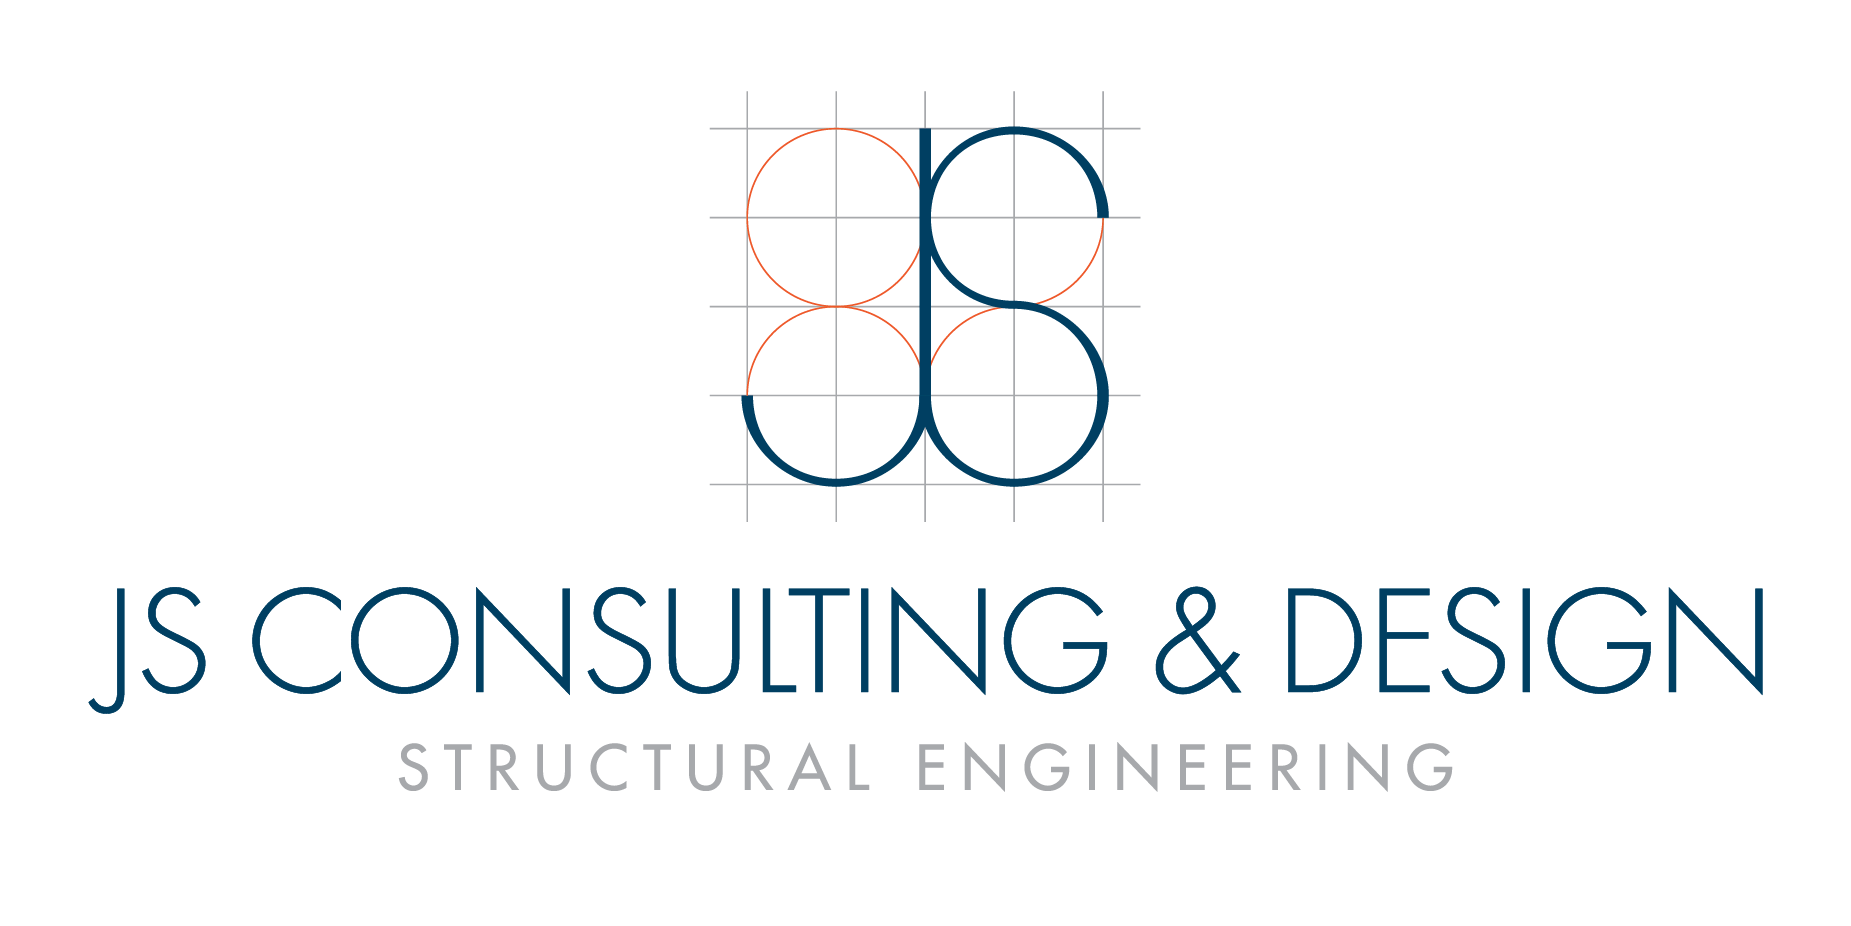 Thank you, JS Consulting!